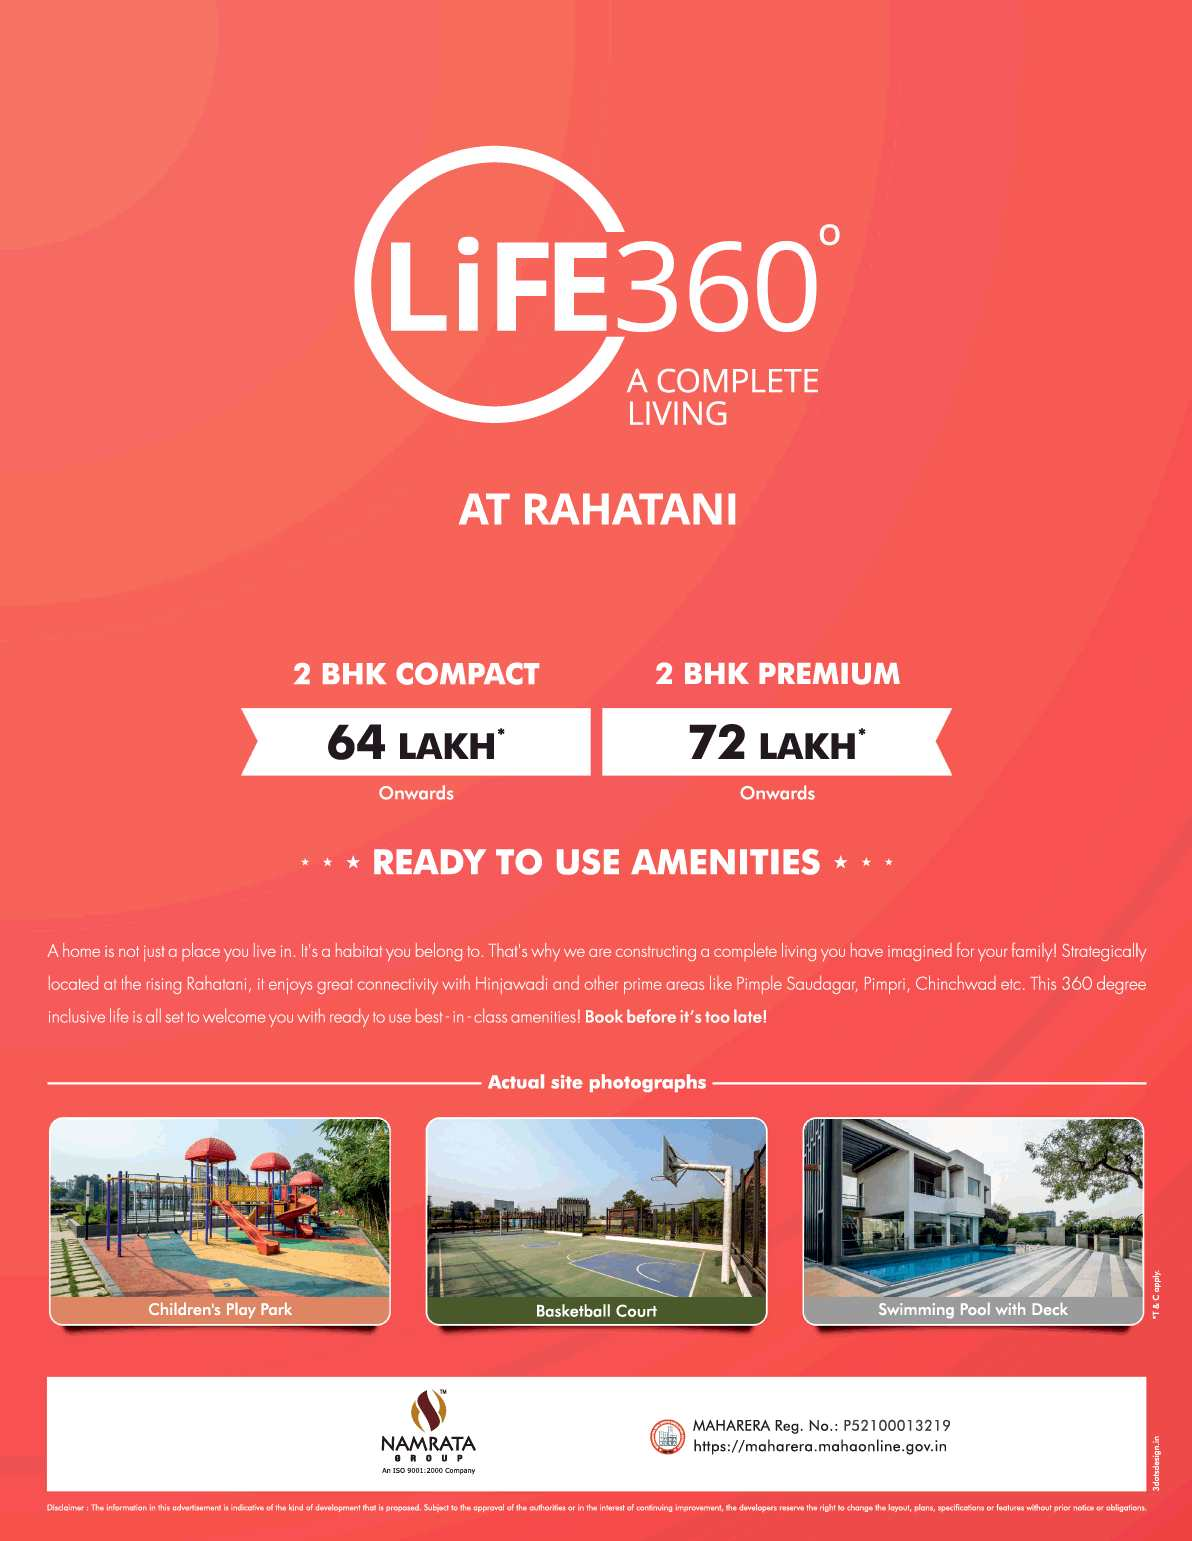 Enjoy 360 degree inclusive life with ready to use amenities at